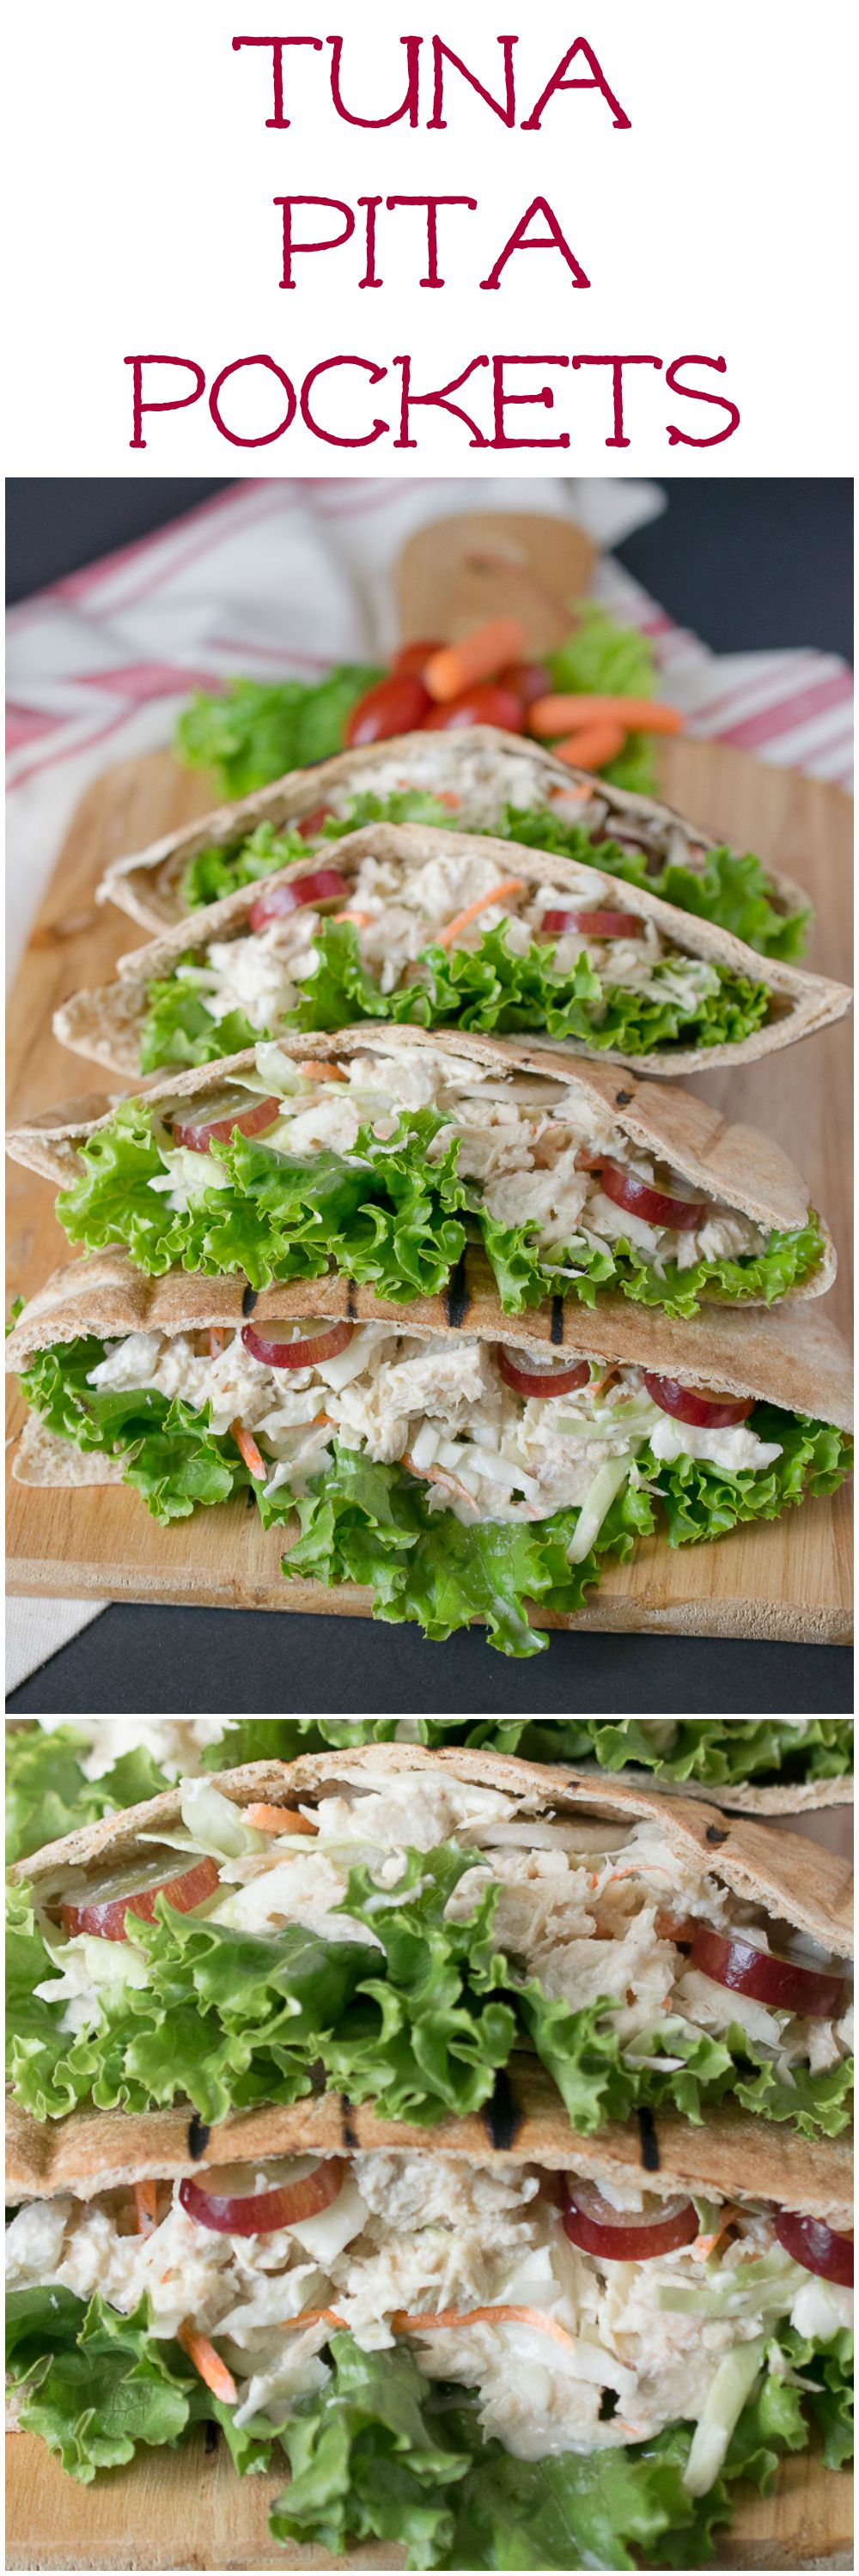 Tuna pita pockets-longpin